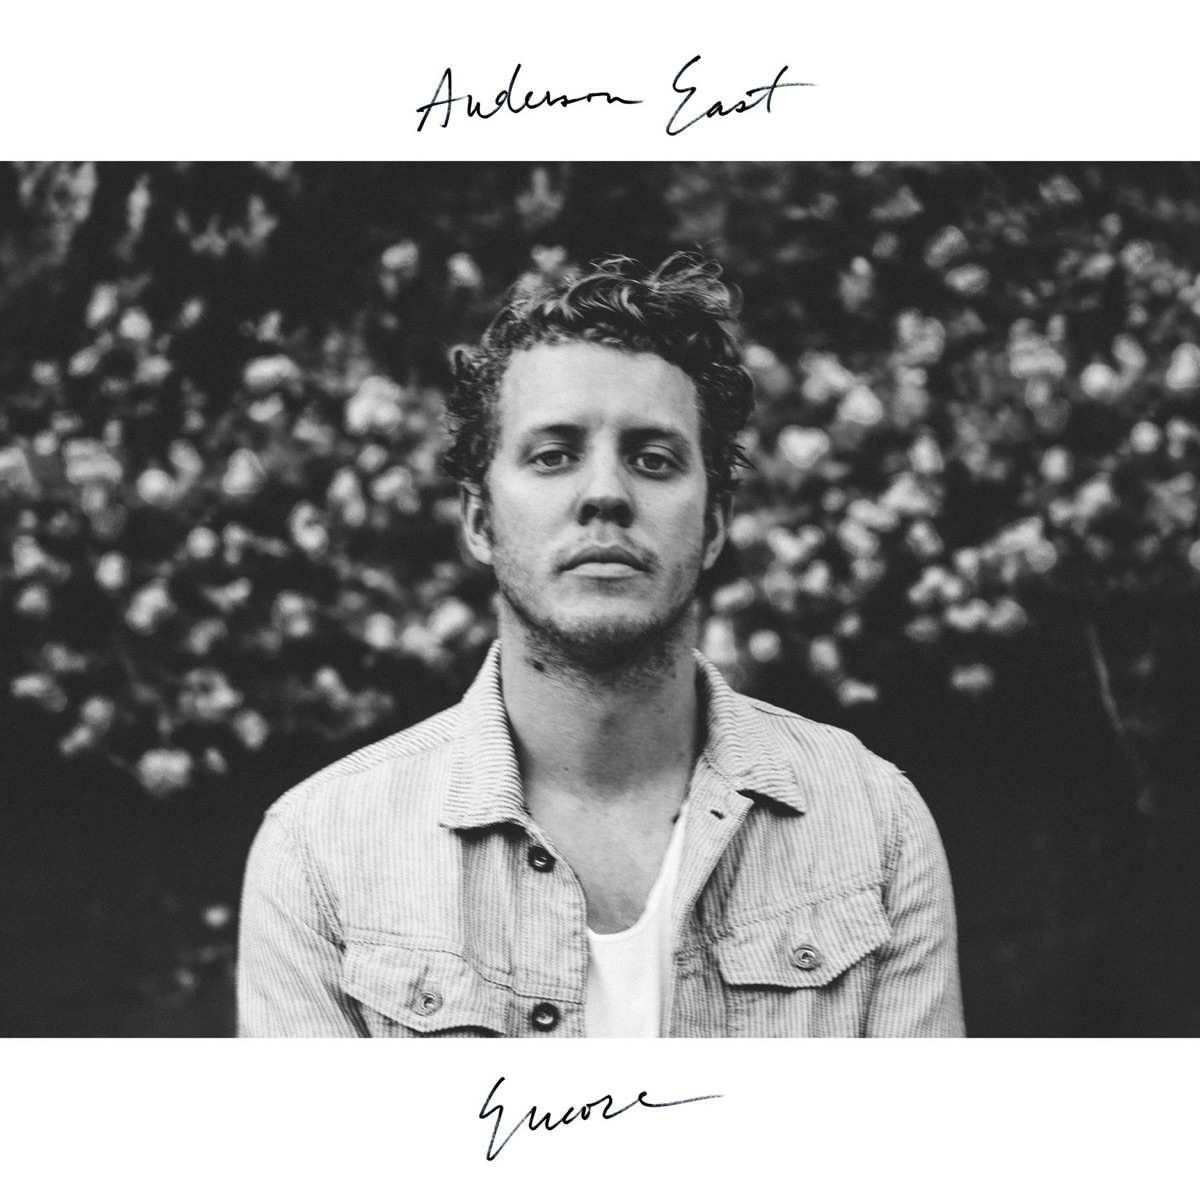 Encore Anderson East CD cover